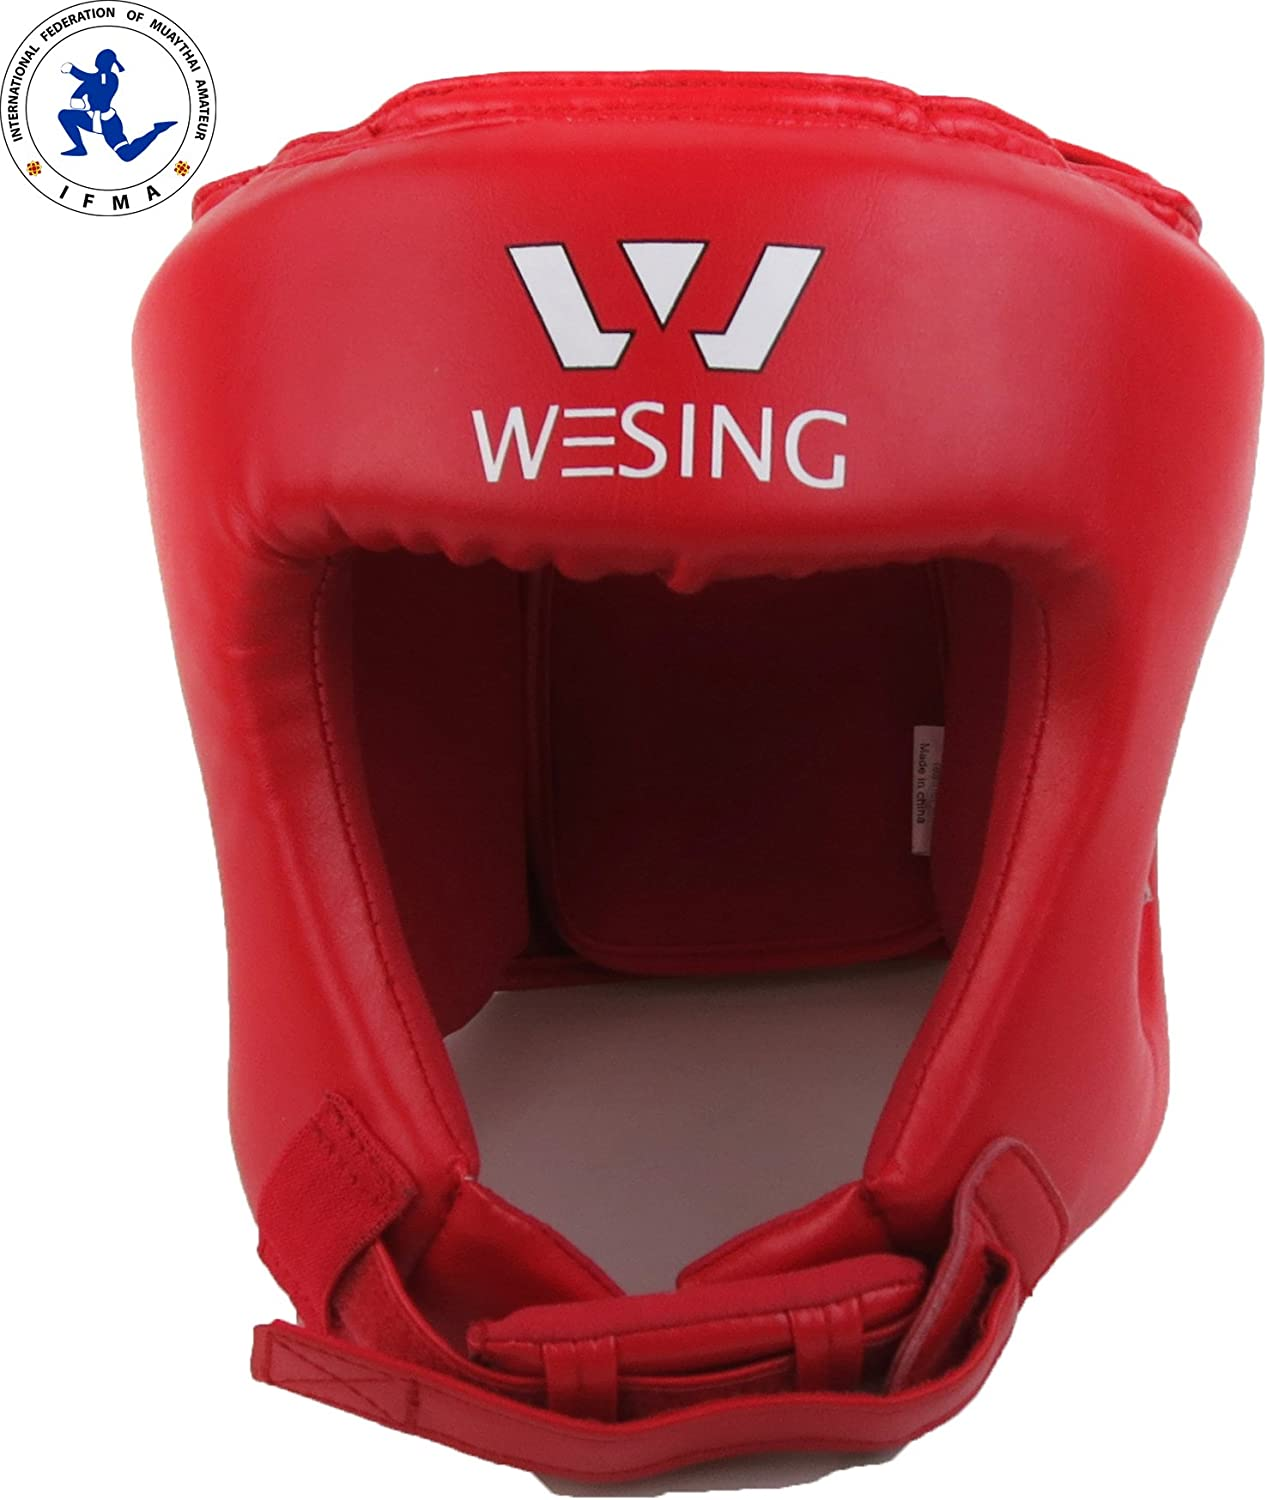 Professional IMFA Approved Muay Thai Competition Headguard by Wesing